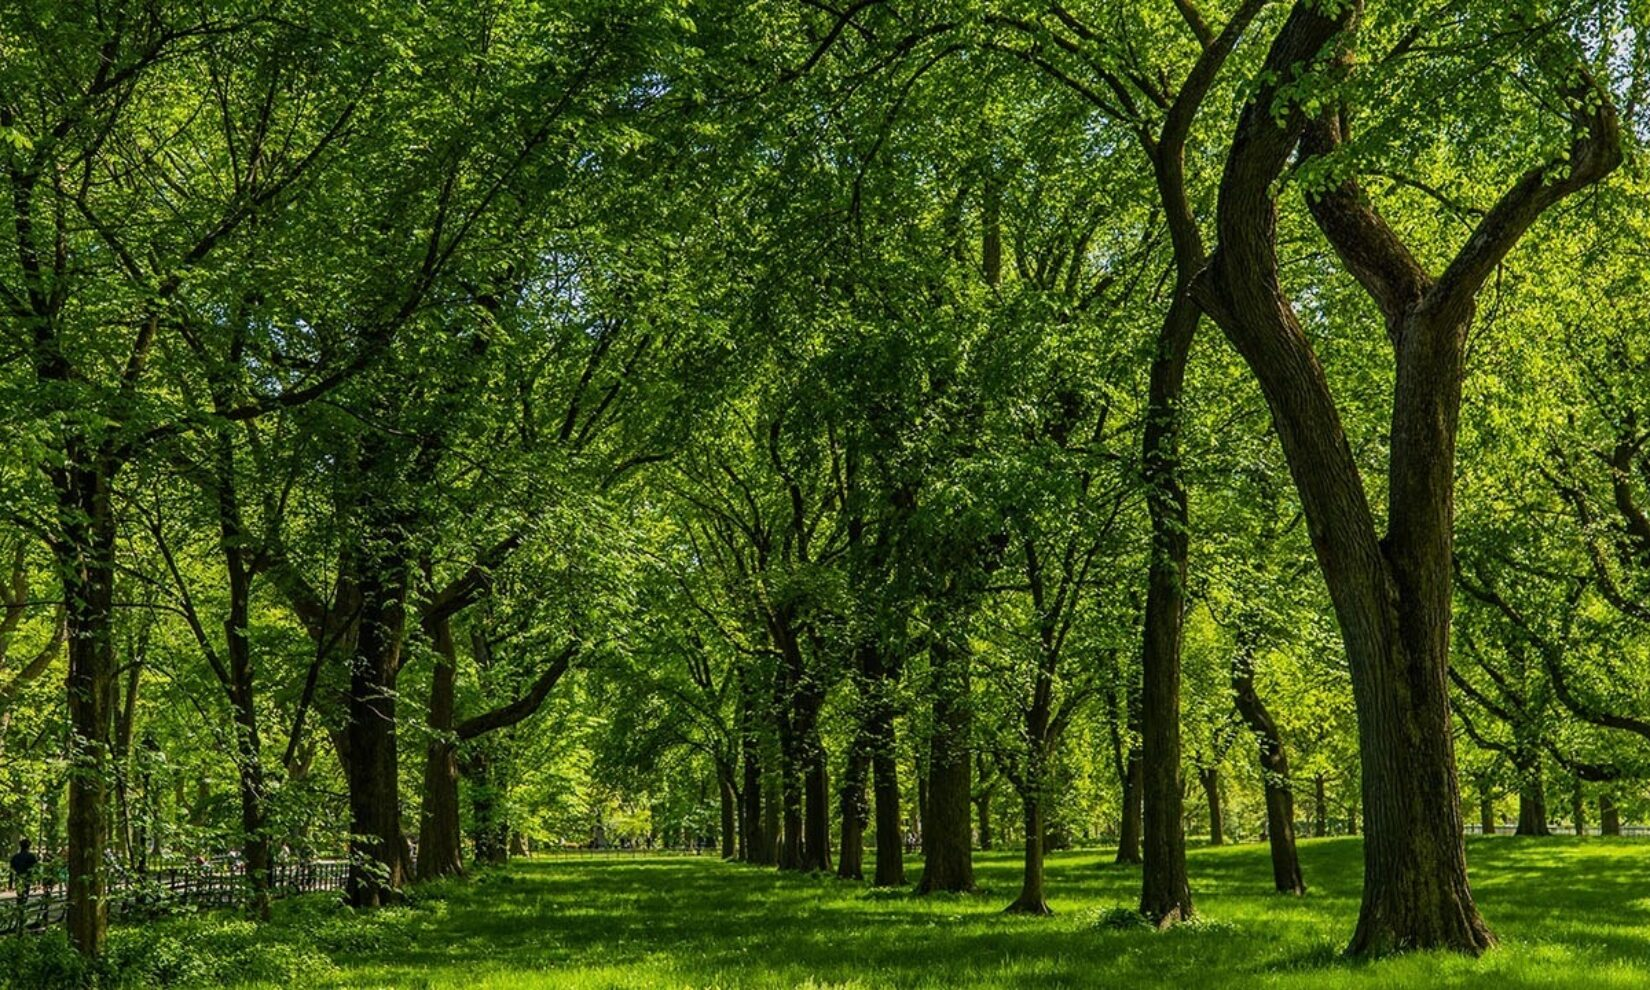 Summer Guide trees